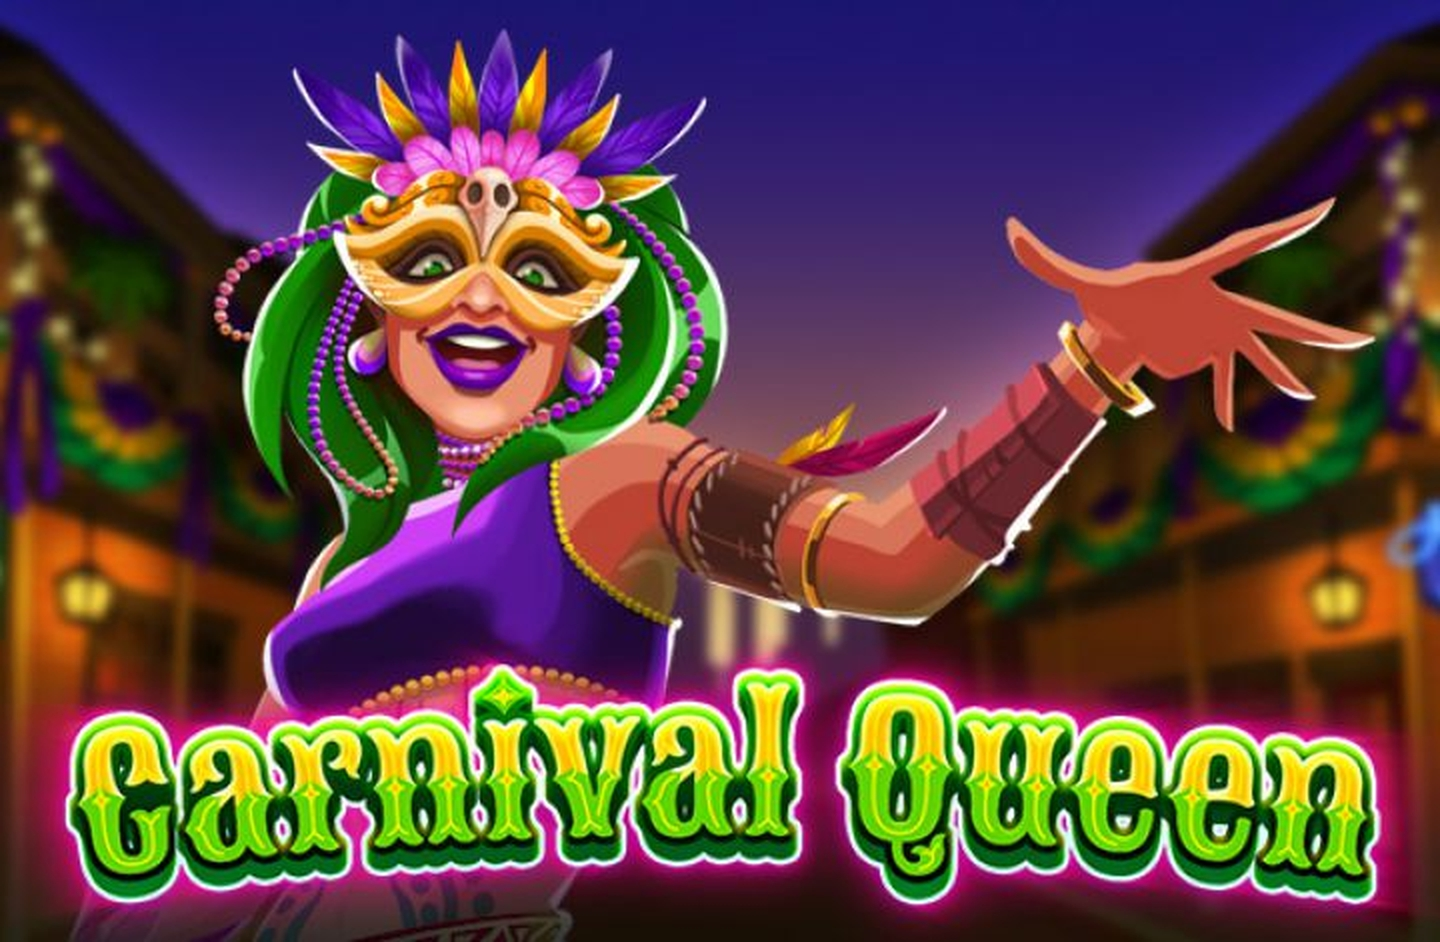 The Carnival Queen Online Slot Demo Game by Thunderkick